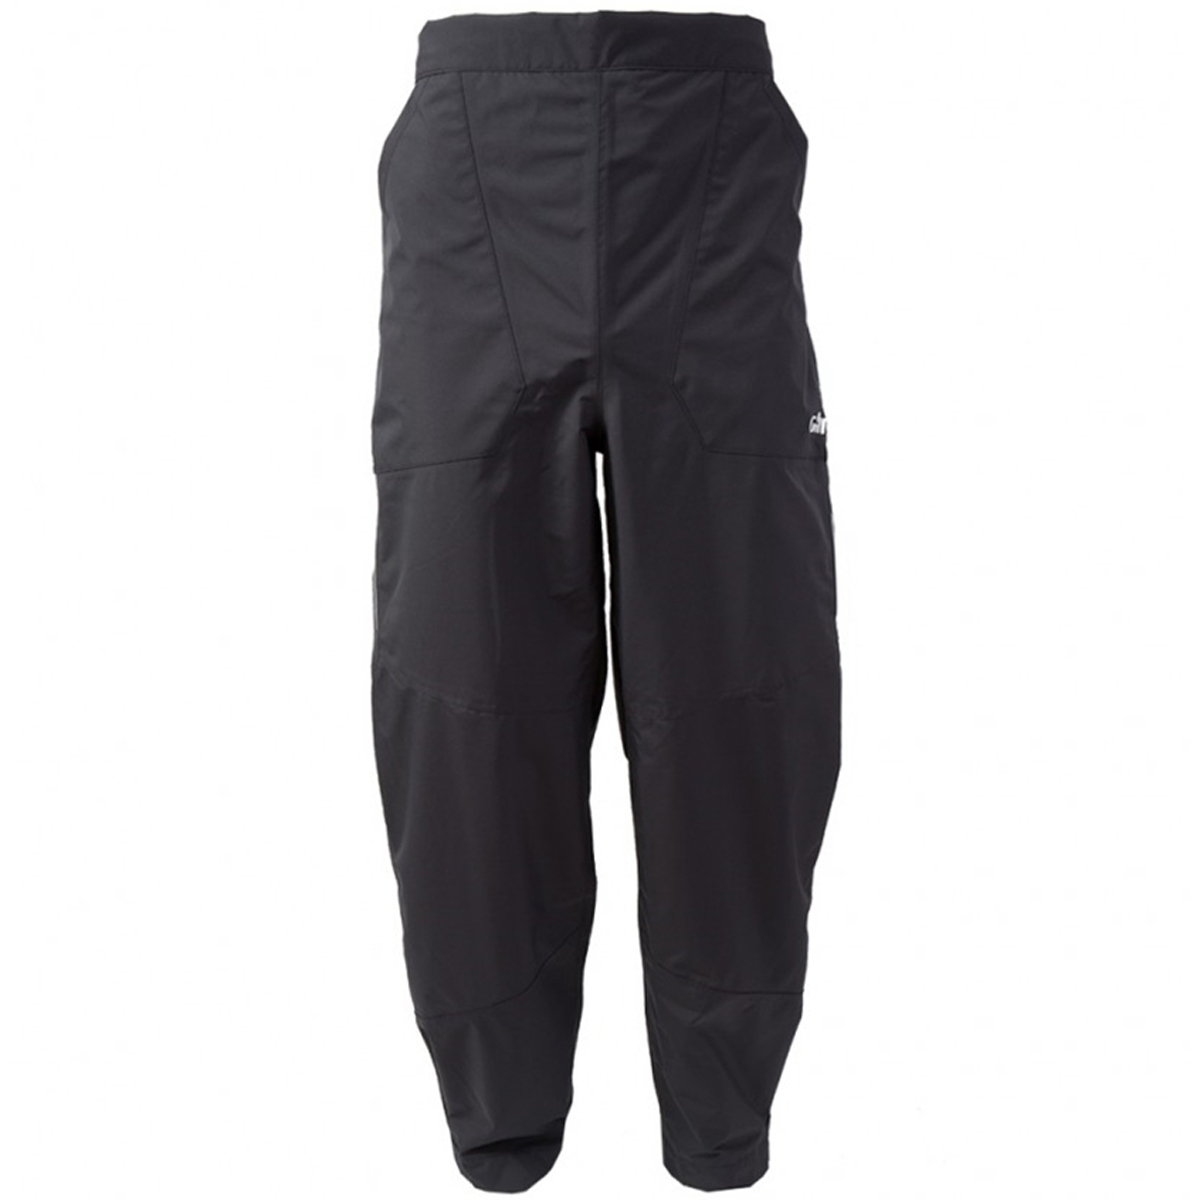 Gill Pilot Trouser (IN81T)